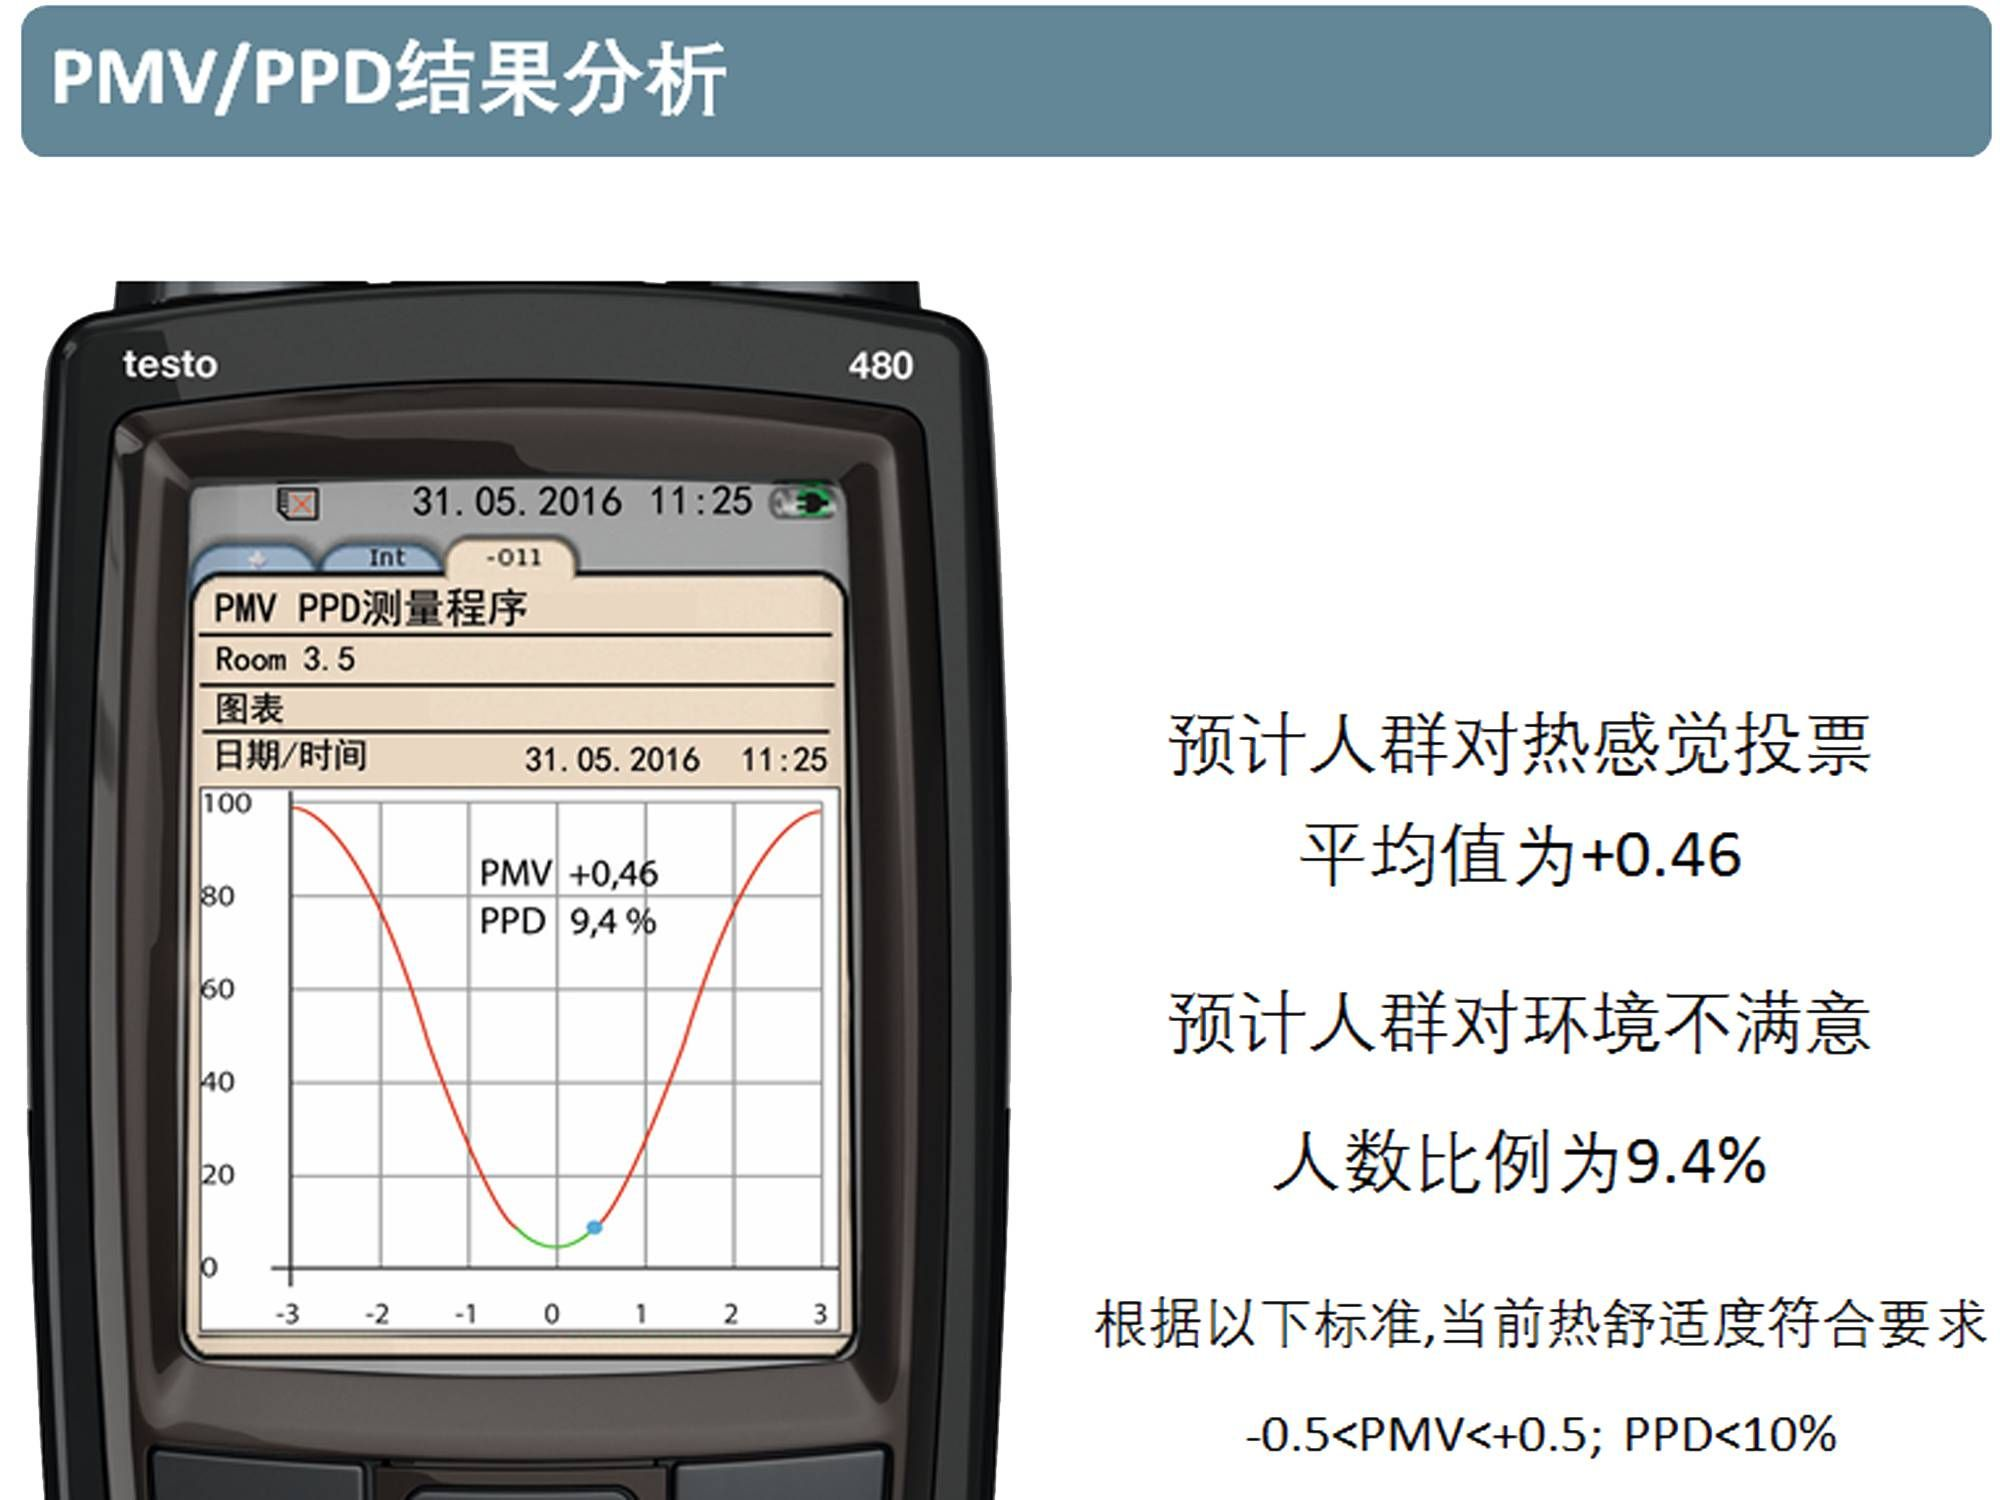 cn_applications_hvacr_indoor_air_and_comfort_PMV_PPD-06.png